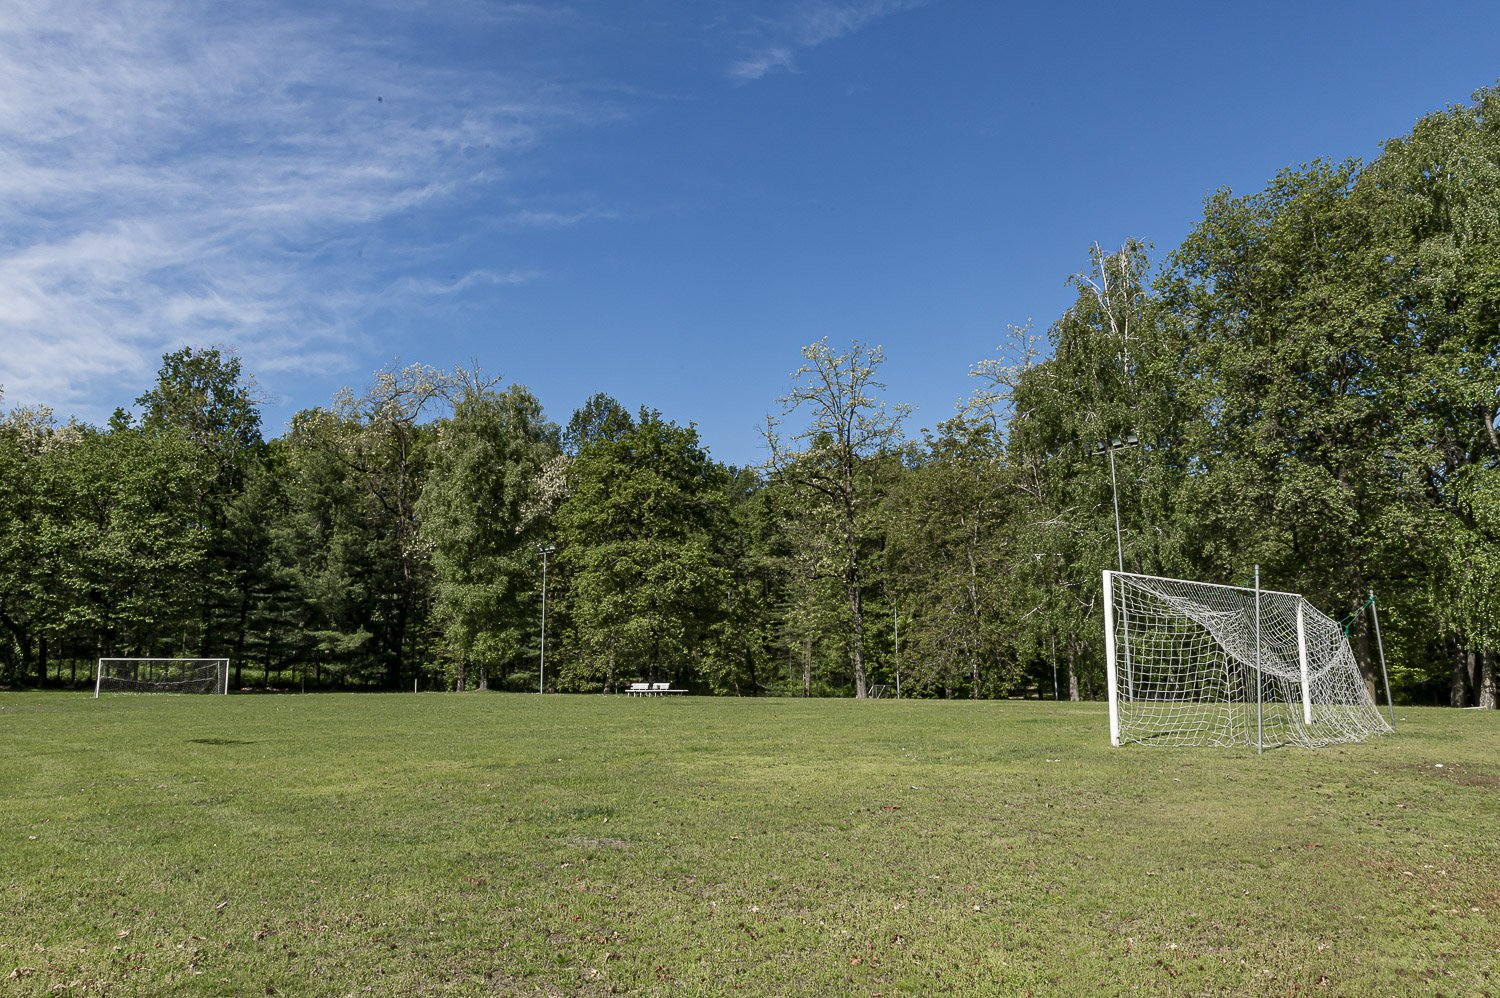 Property in a park in Borgo Ticino, near Lake Maggiore - football field